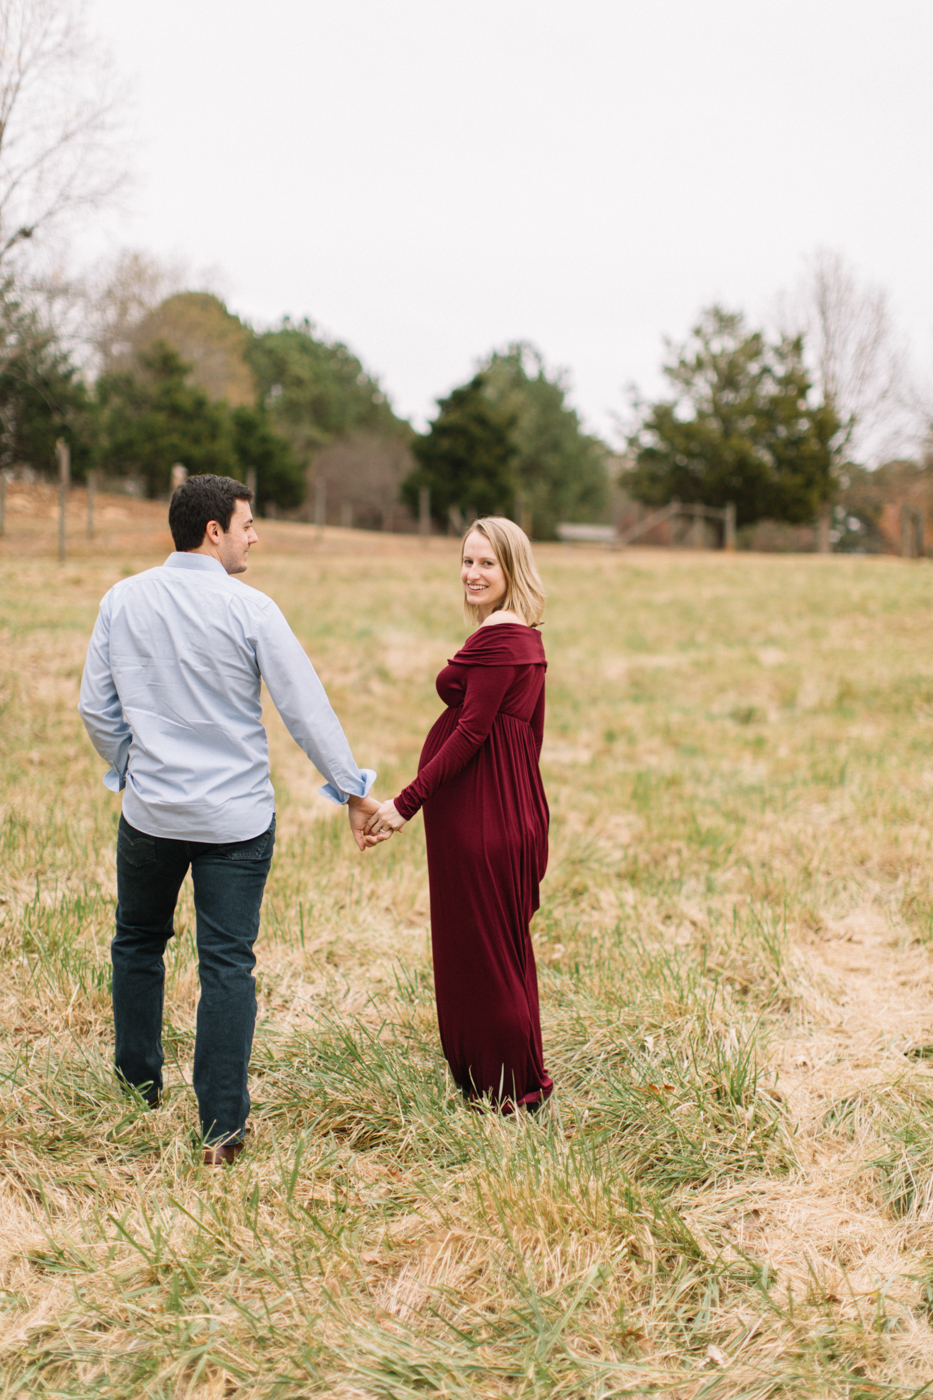 Four Corners Photography Atlanta Best Maternity Photographer Atlanta Best Newborn Photographer Atlanta Newborn Photography McDaniel Farm Park Maternity Session Carrie and Jordan Maternity Session Fall 2016-141.jpg